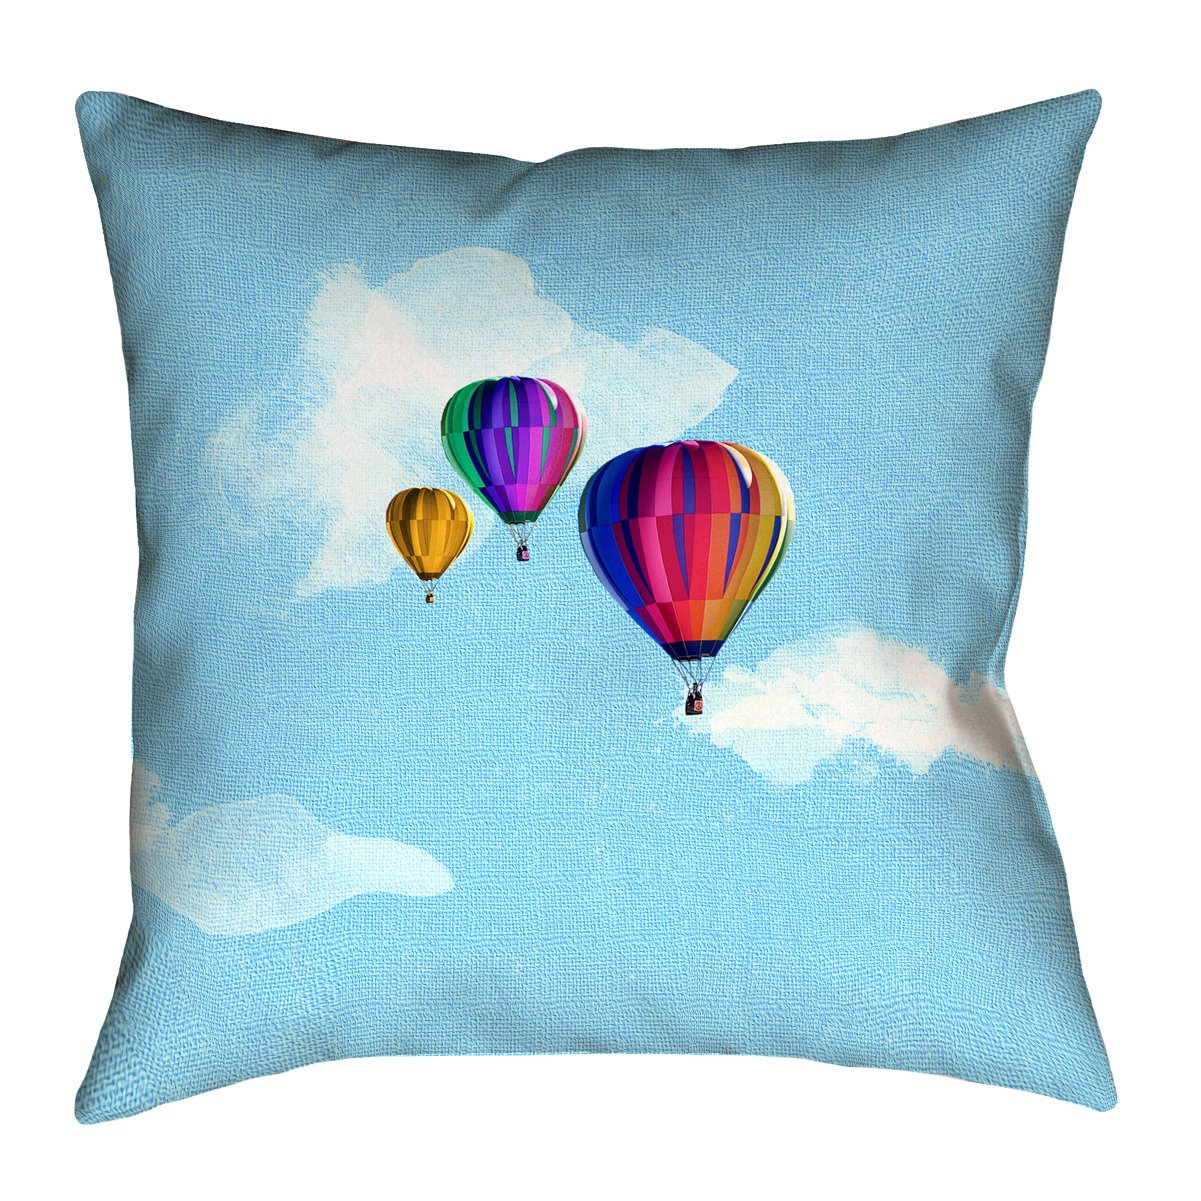 ArtVerse Katelyn Smith 20 x 20 Faux Suede Double Sided Print with Concealed Zipper /& Insert Hot Air Balloons Pillow